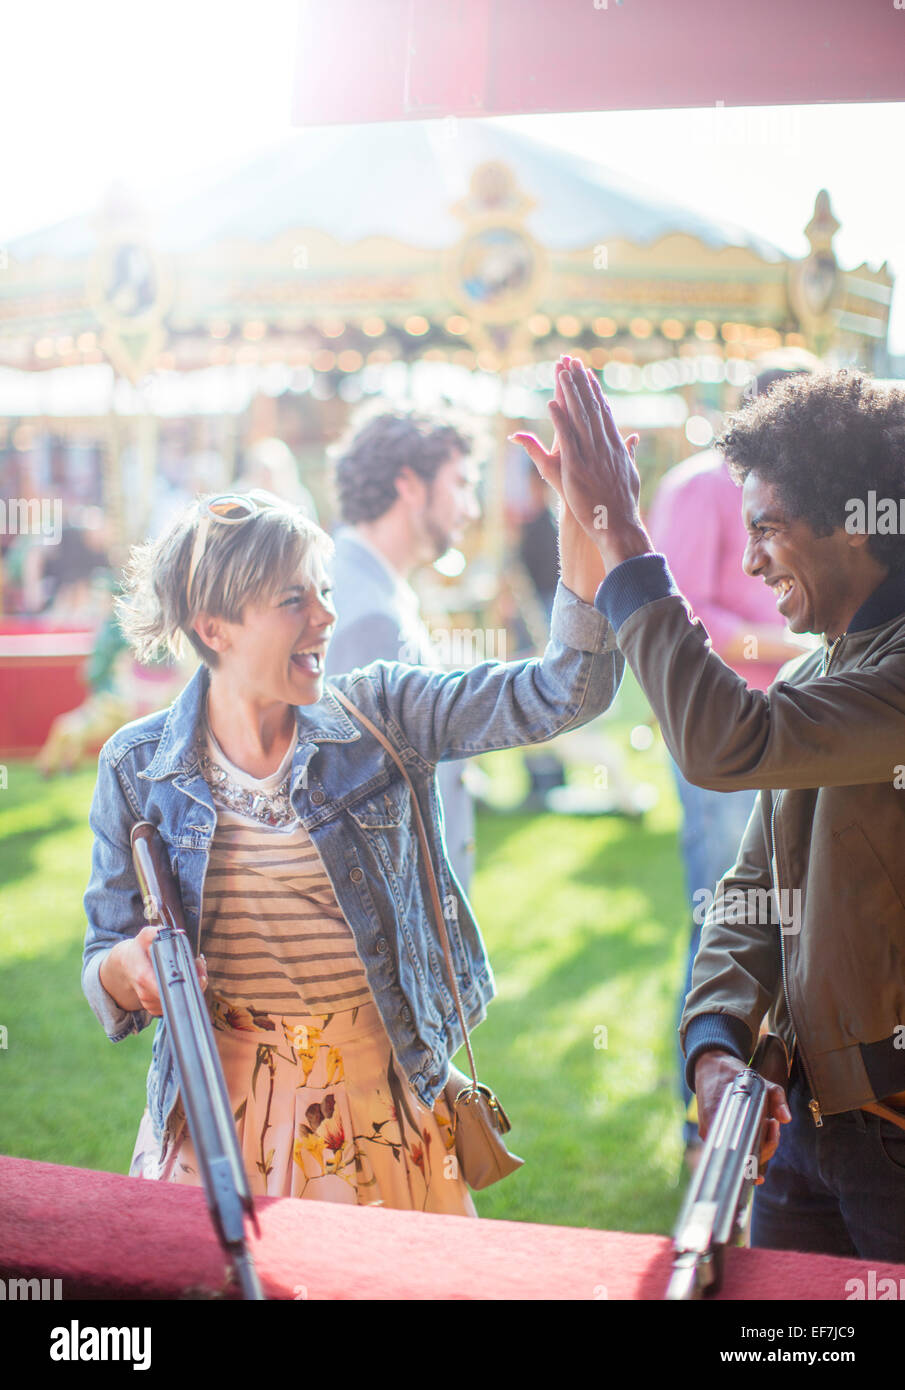 Young couple giving high five in amusement park Stock Photo